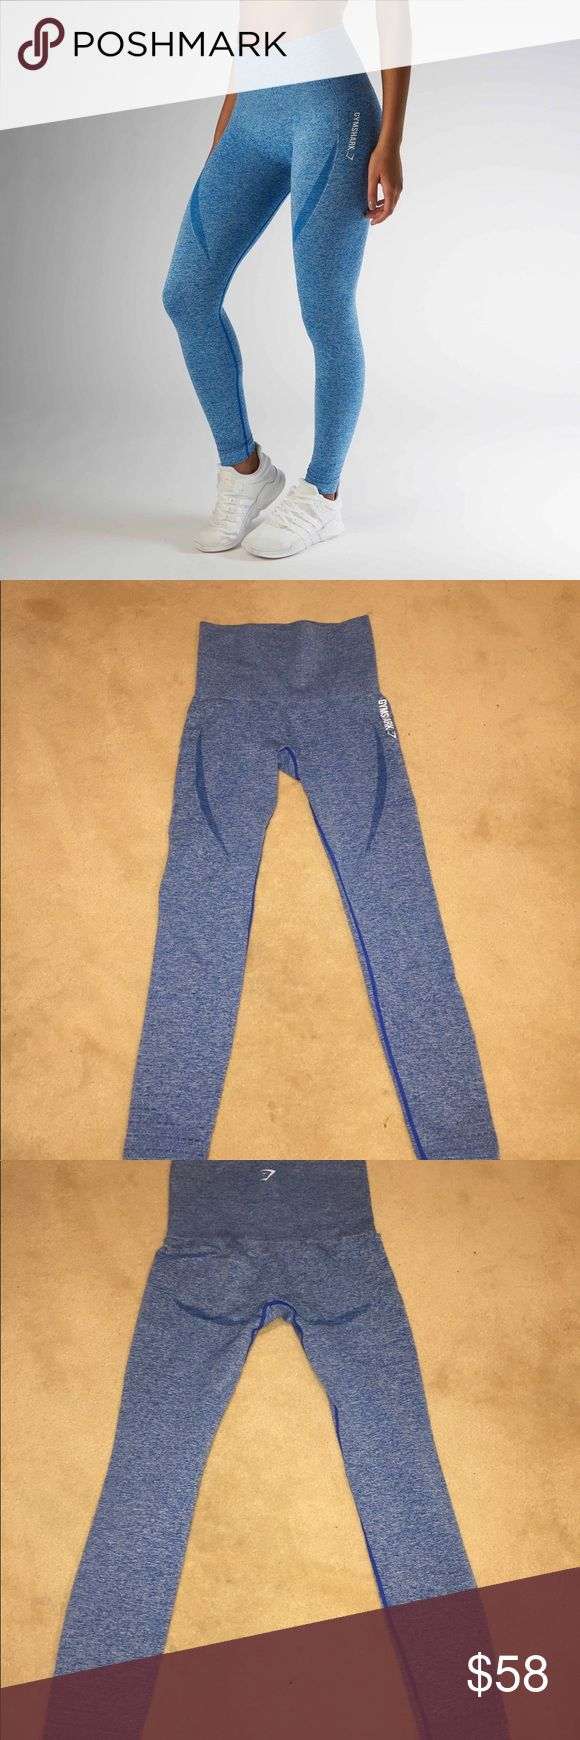 Gymshark Seamless Leggings Blue Marl Popular and sold out Seamless Legging   Size XS (I usually fit Small too)   Flattering for booty  Great condition, like new Gymshark Pants Leggings